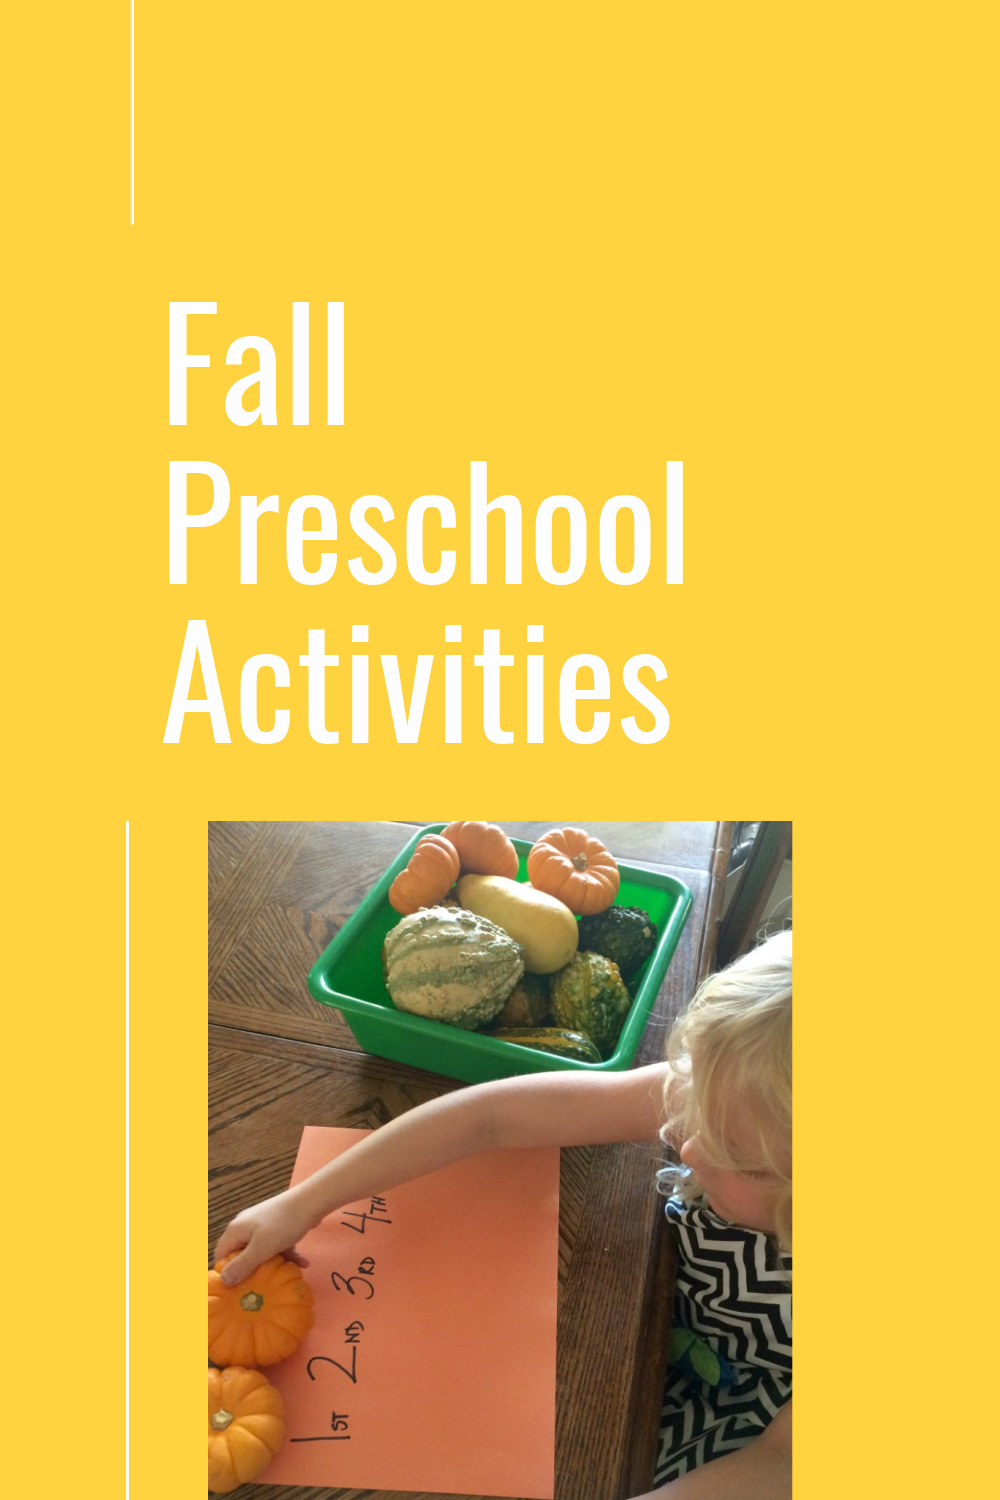 This collection is a list of my favorite fall preschool activities. I taught these in my preschool classrooms and my children loved them when we did preschool at home.